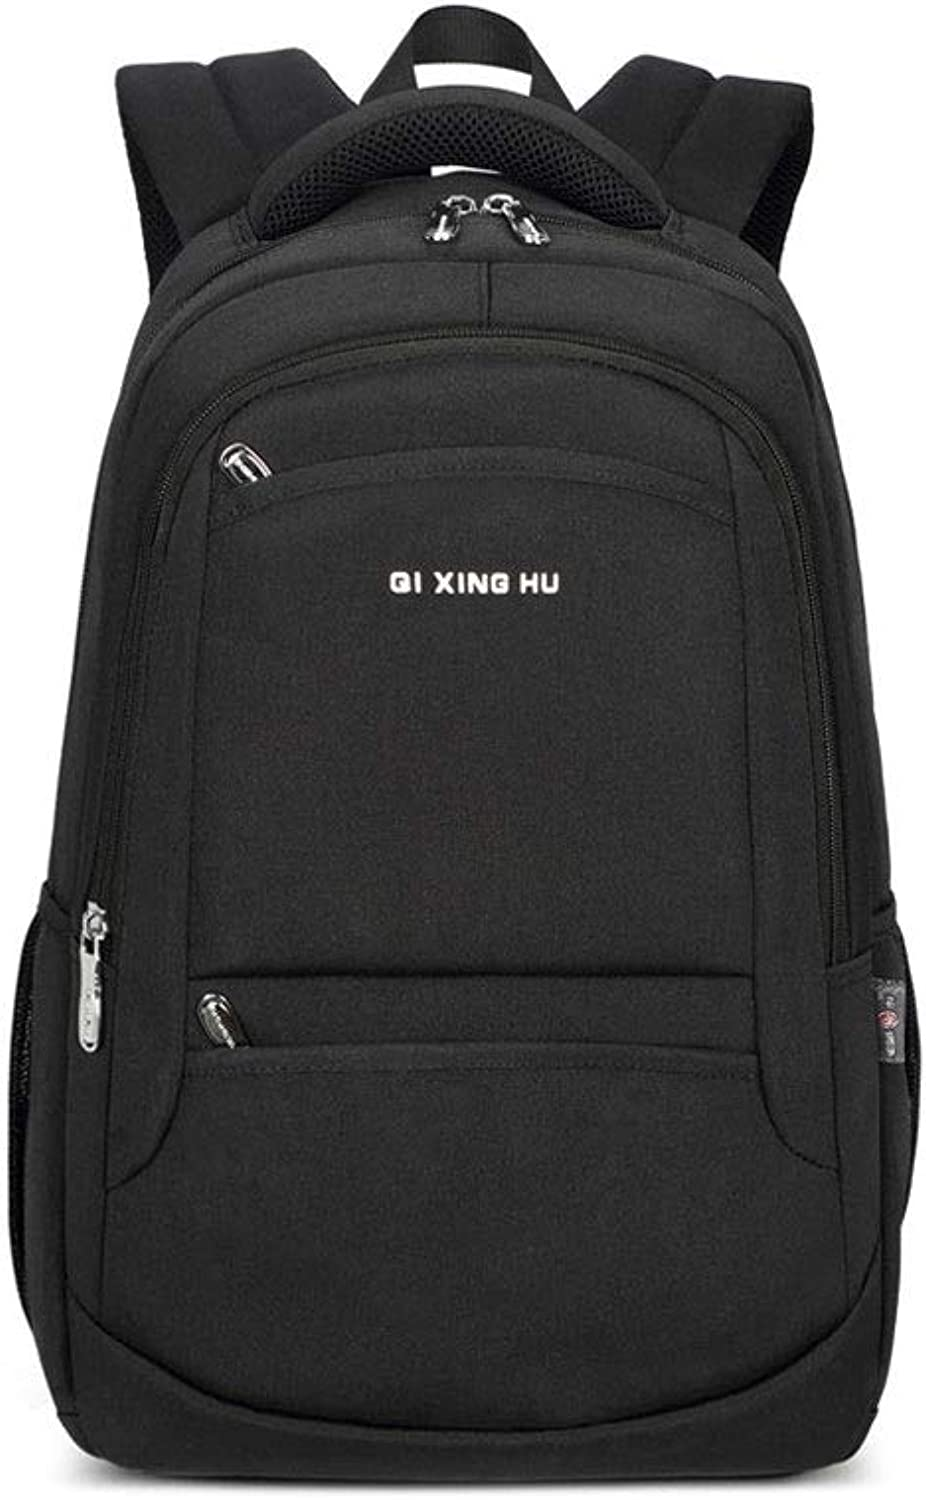 AnSuu Business Backpack Men's Backpack Business & Amp; Leisure Computer Large Capacity Outdoor Travel Bag (color   Black)